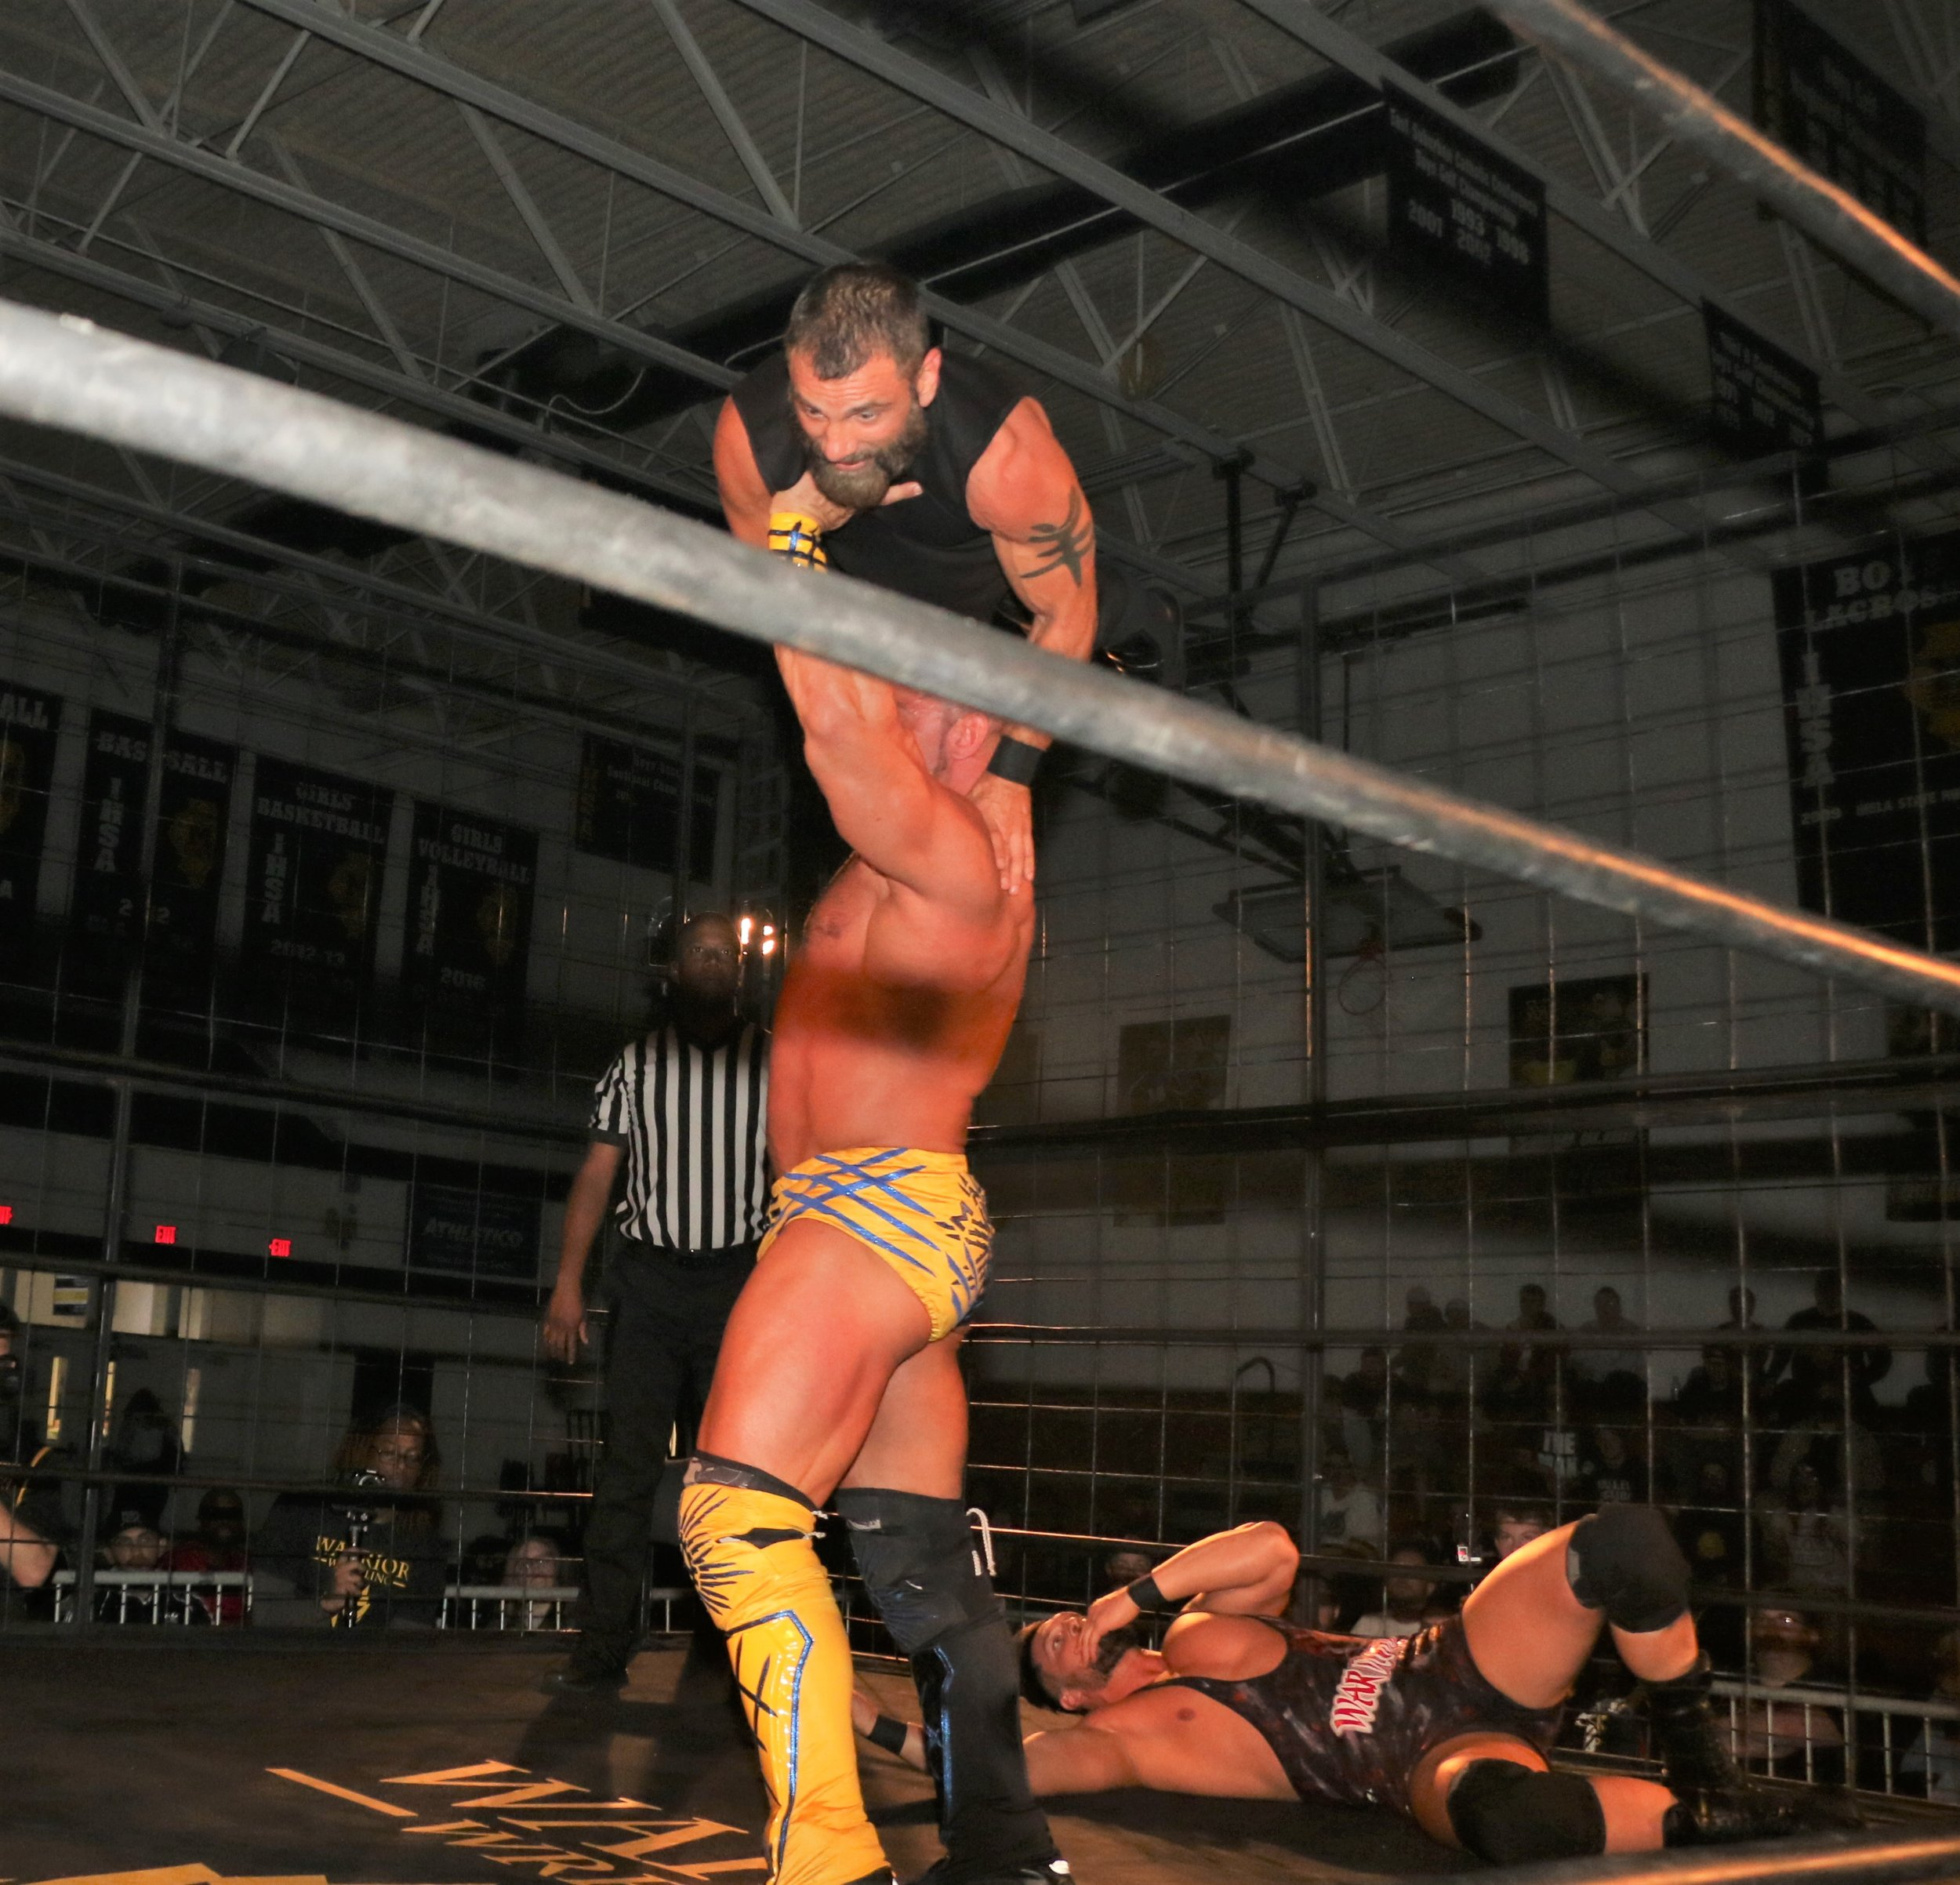 Brian Cage hoists Austin Aries up in a gorilla press.